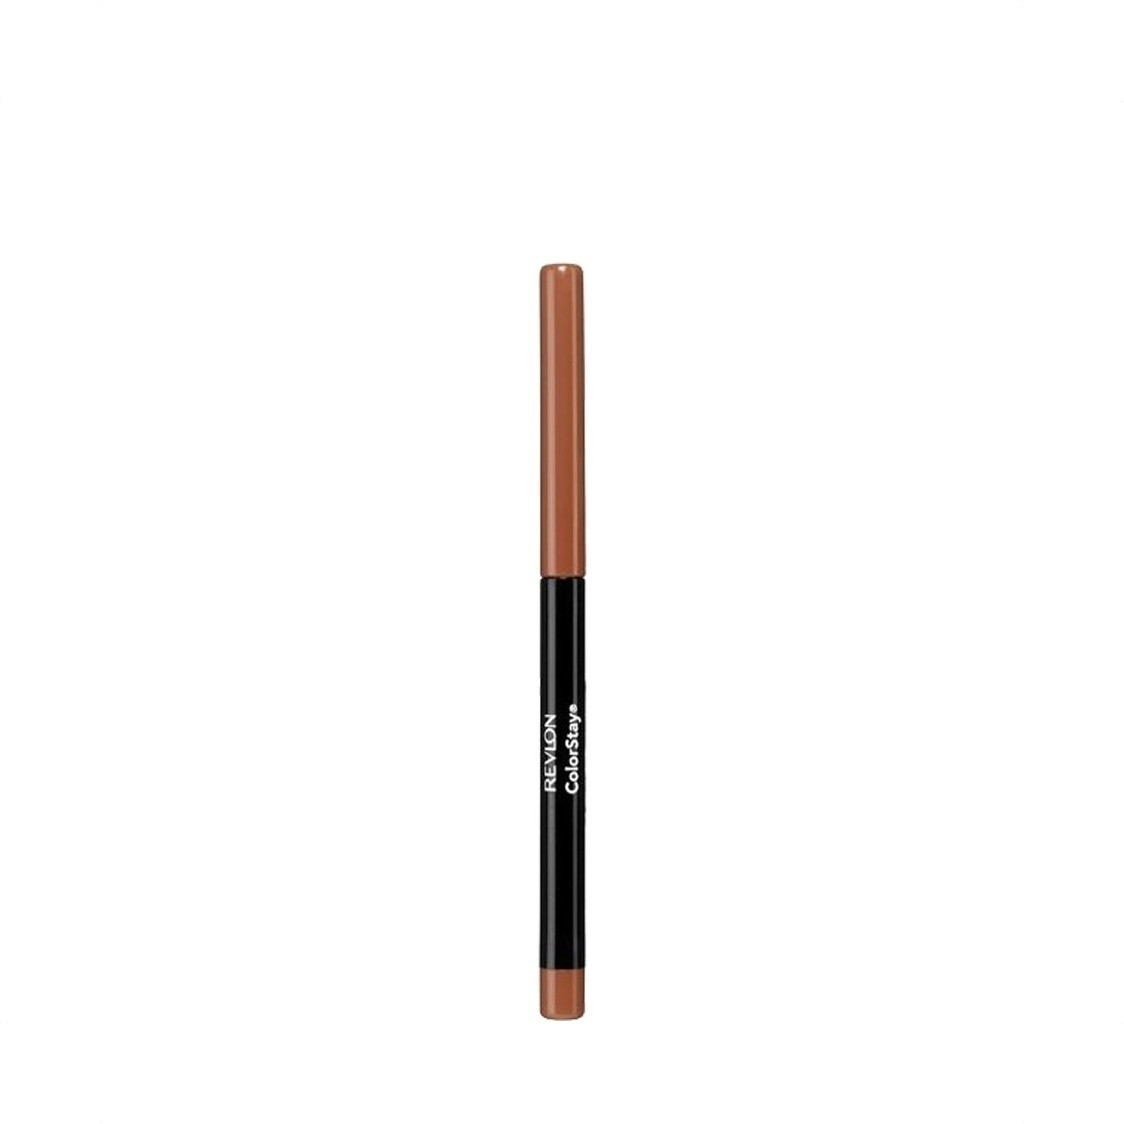 Colourstay Lipliner